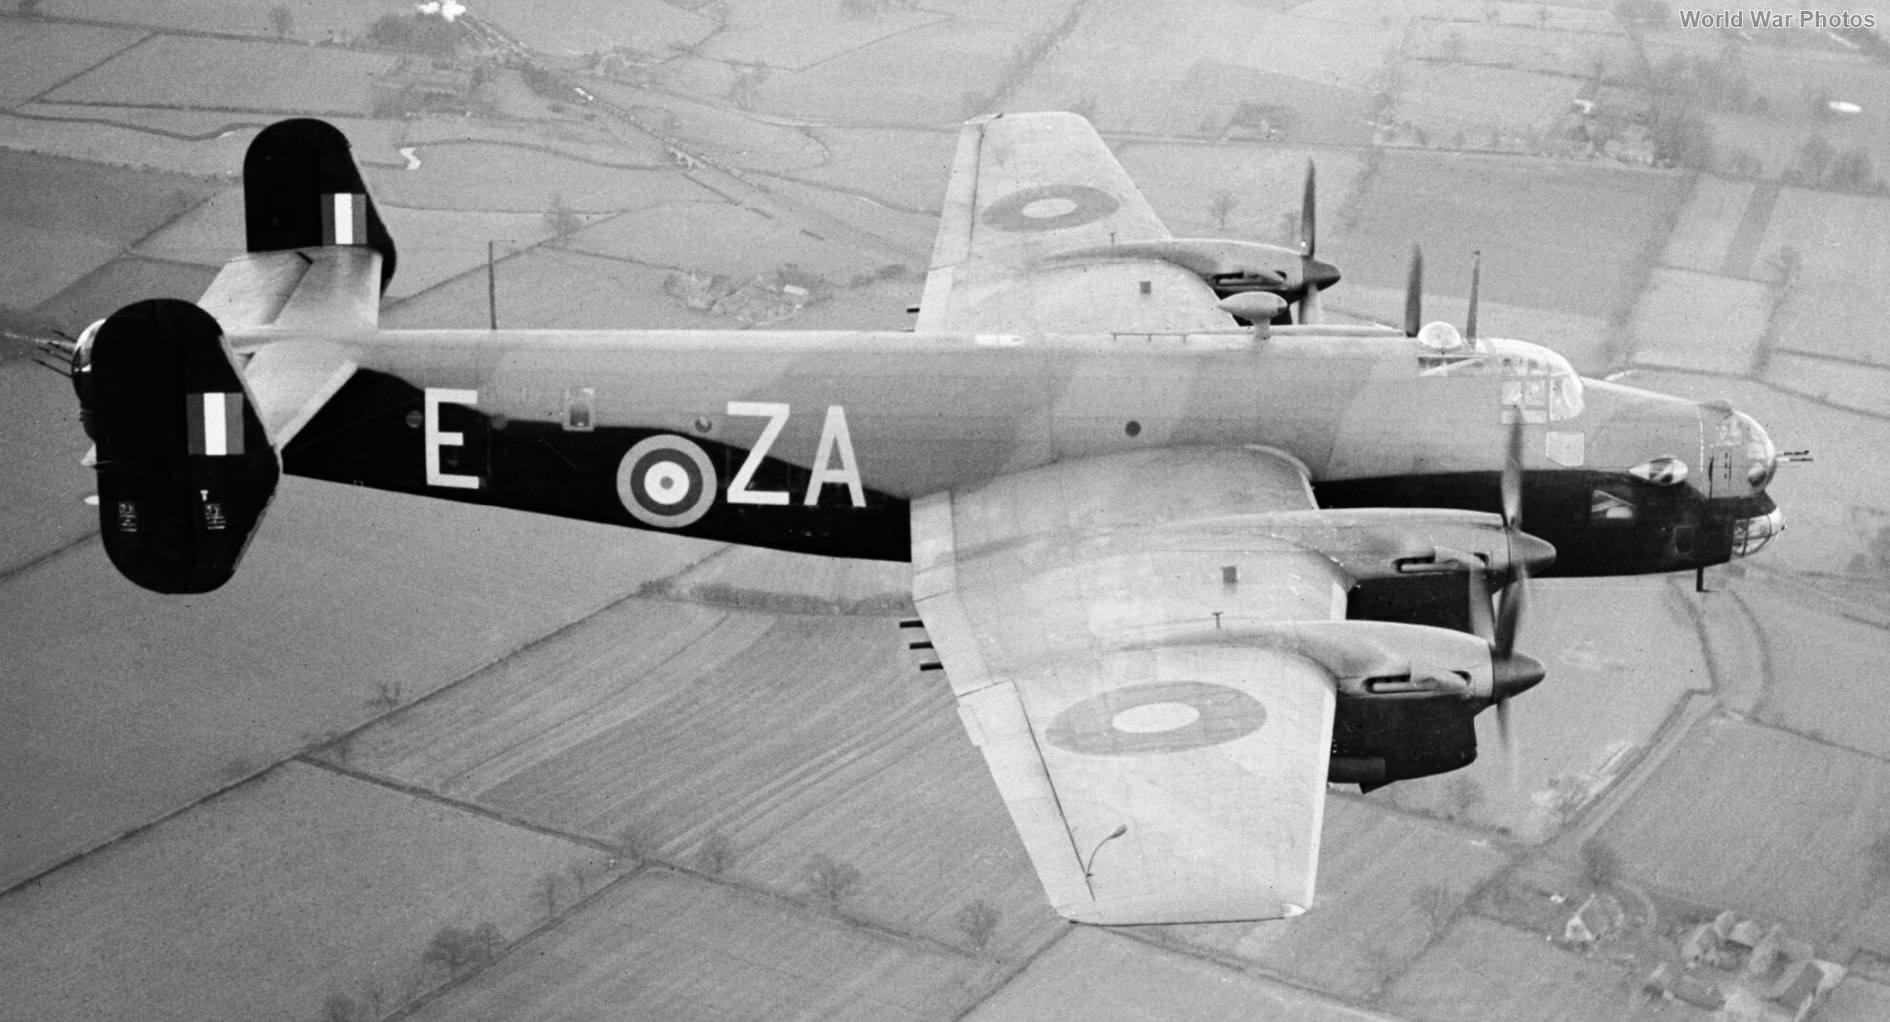 Handley Page Halifax II Series 1 L9619 in flight